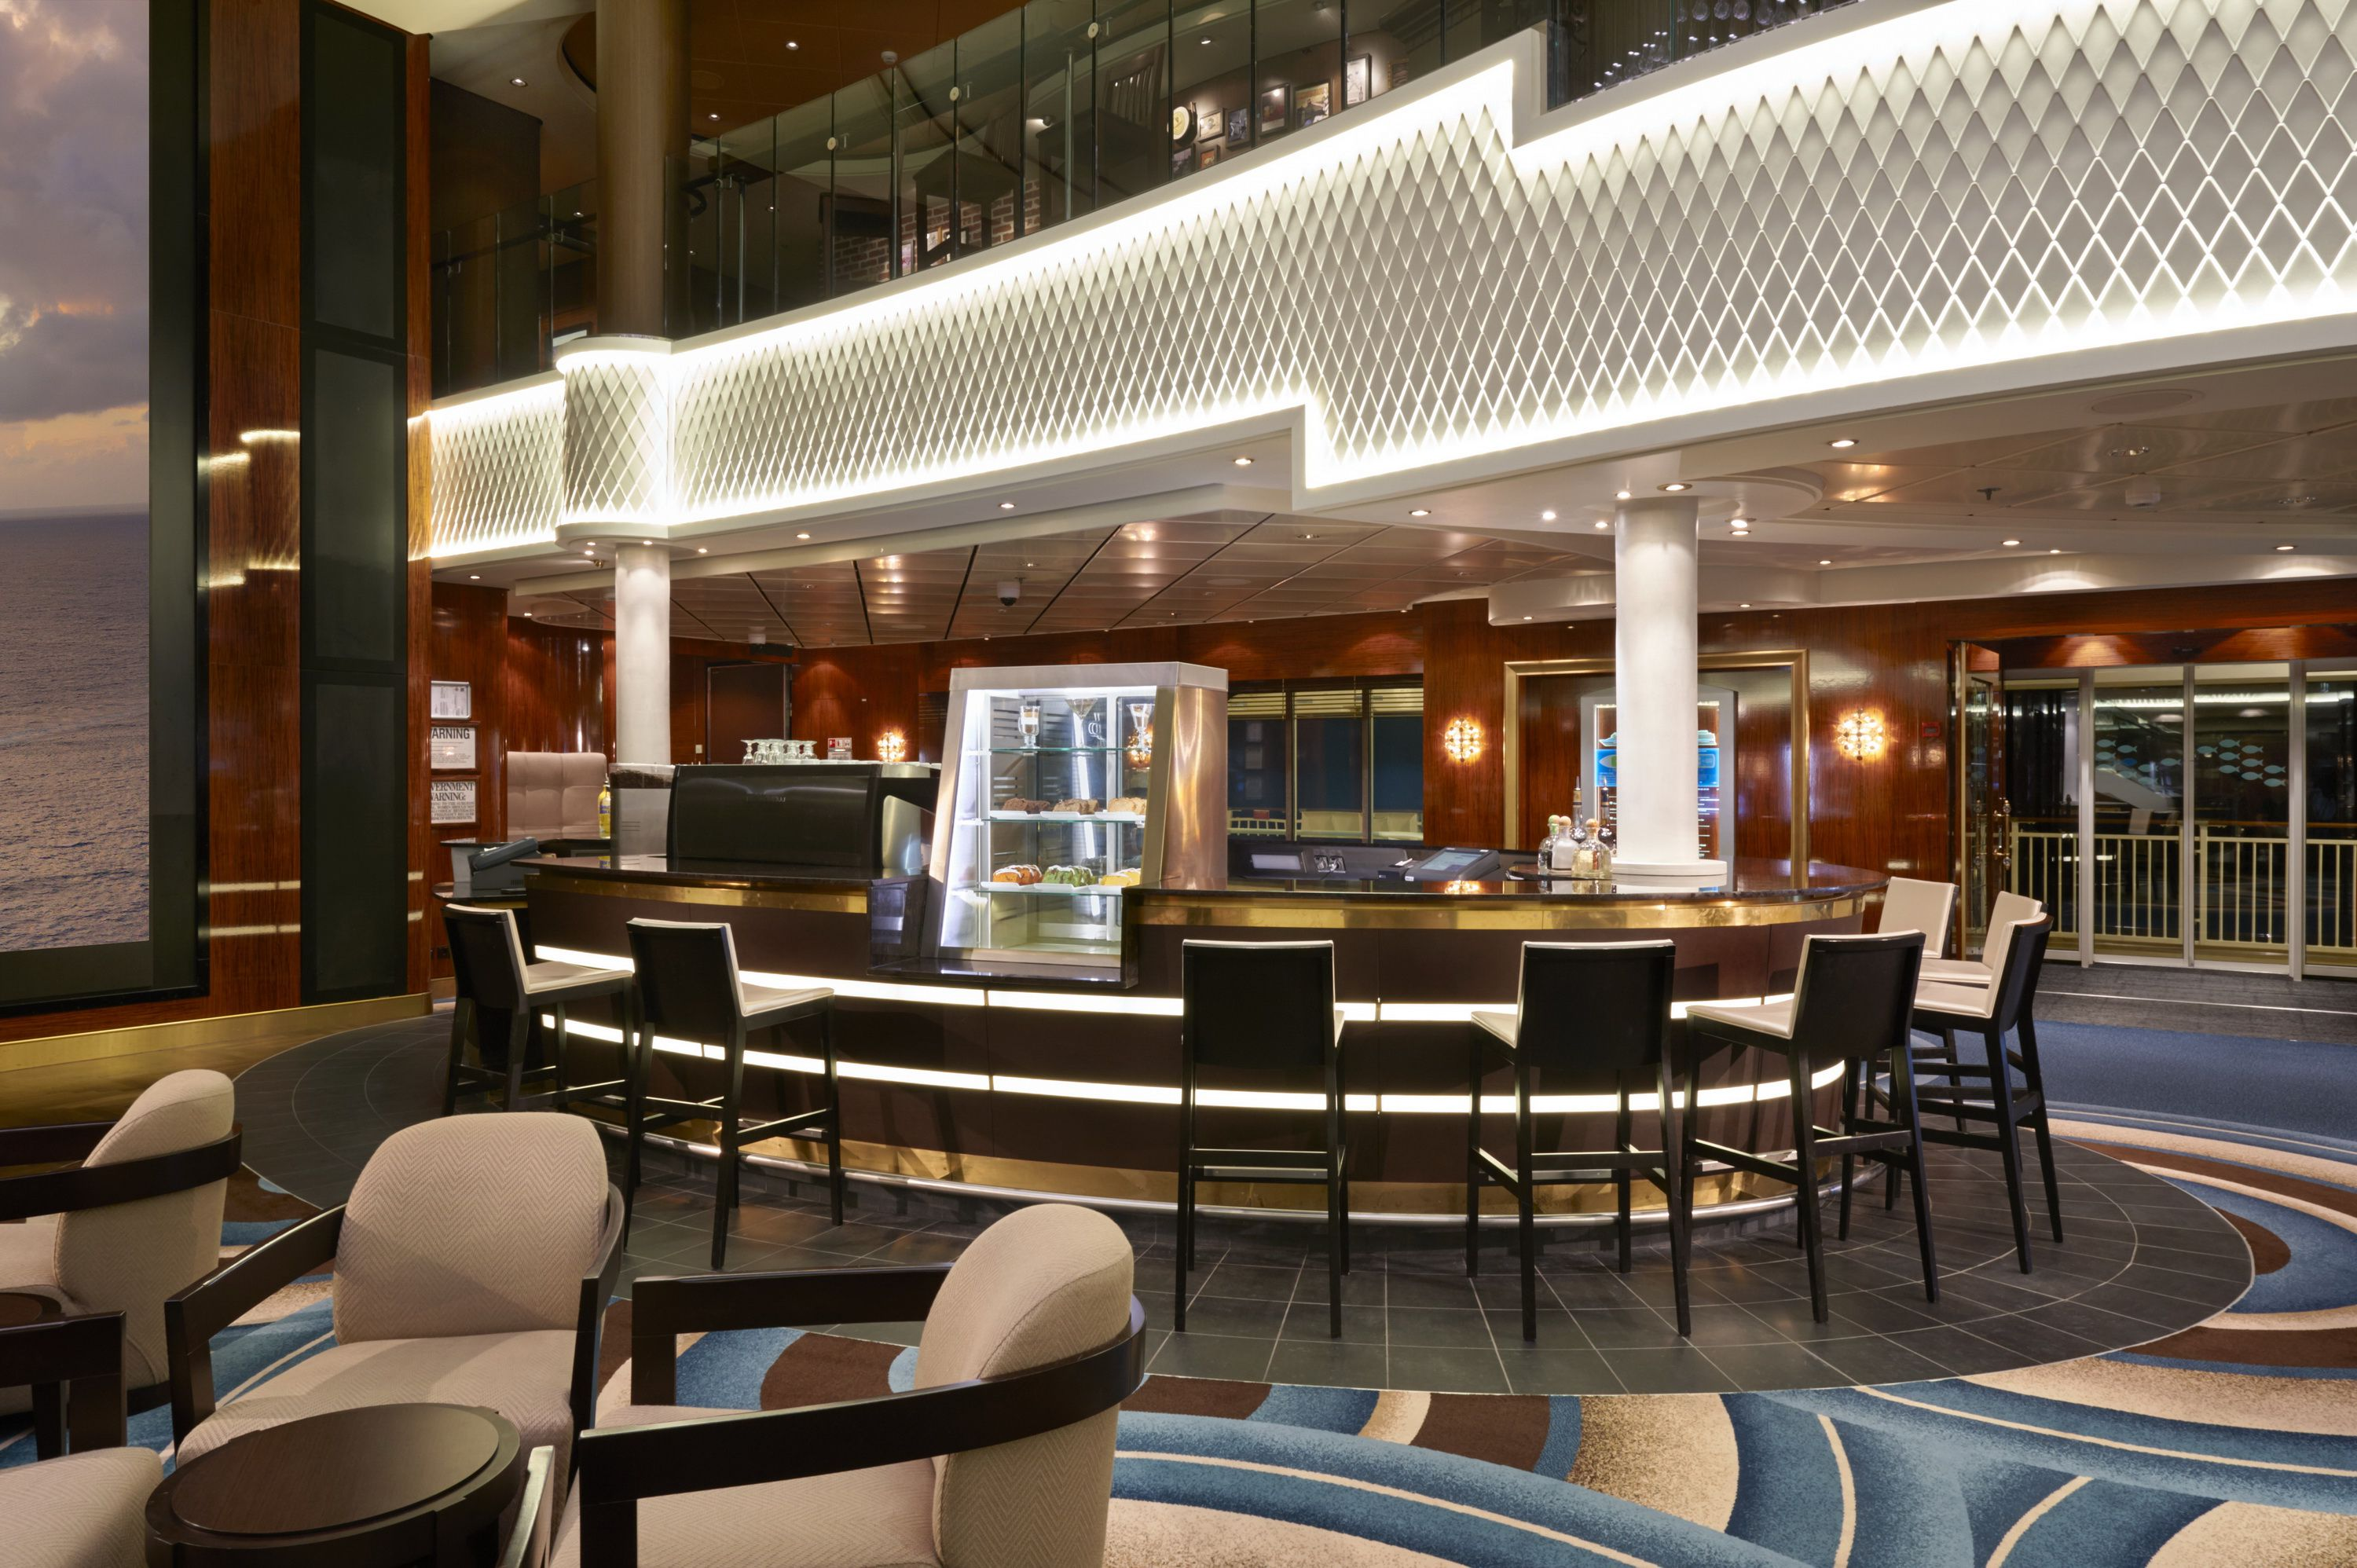 Norwegian Gem Cruise Ship Bars And Lounges